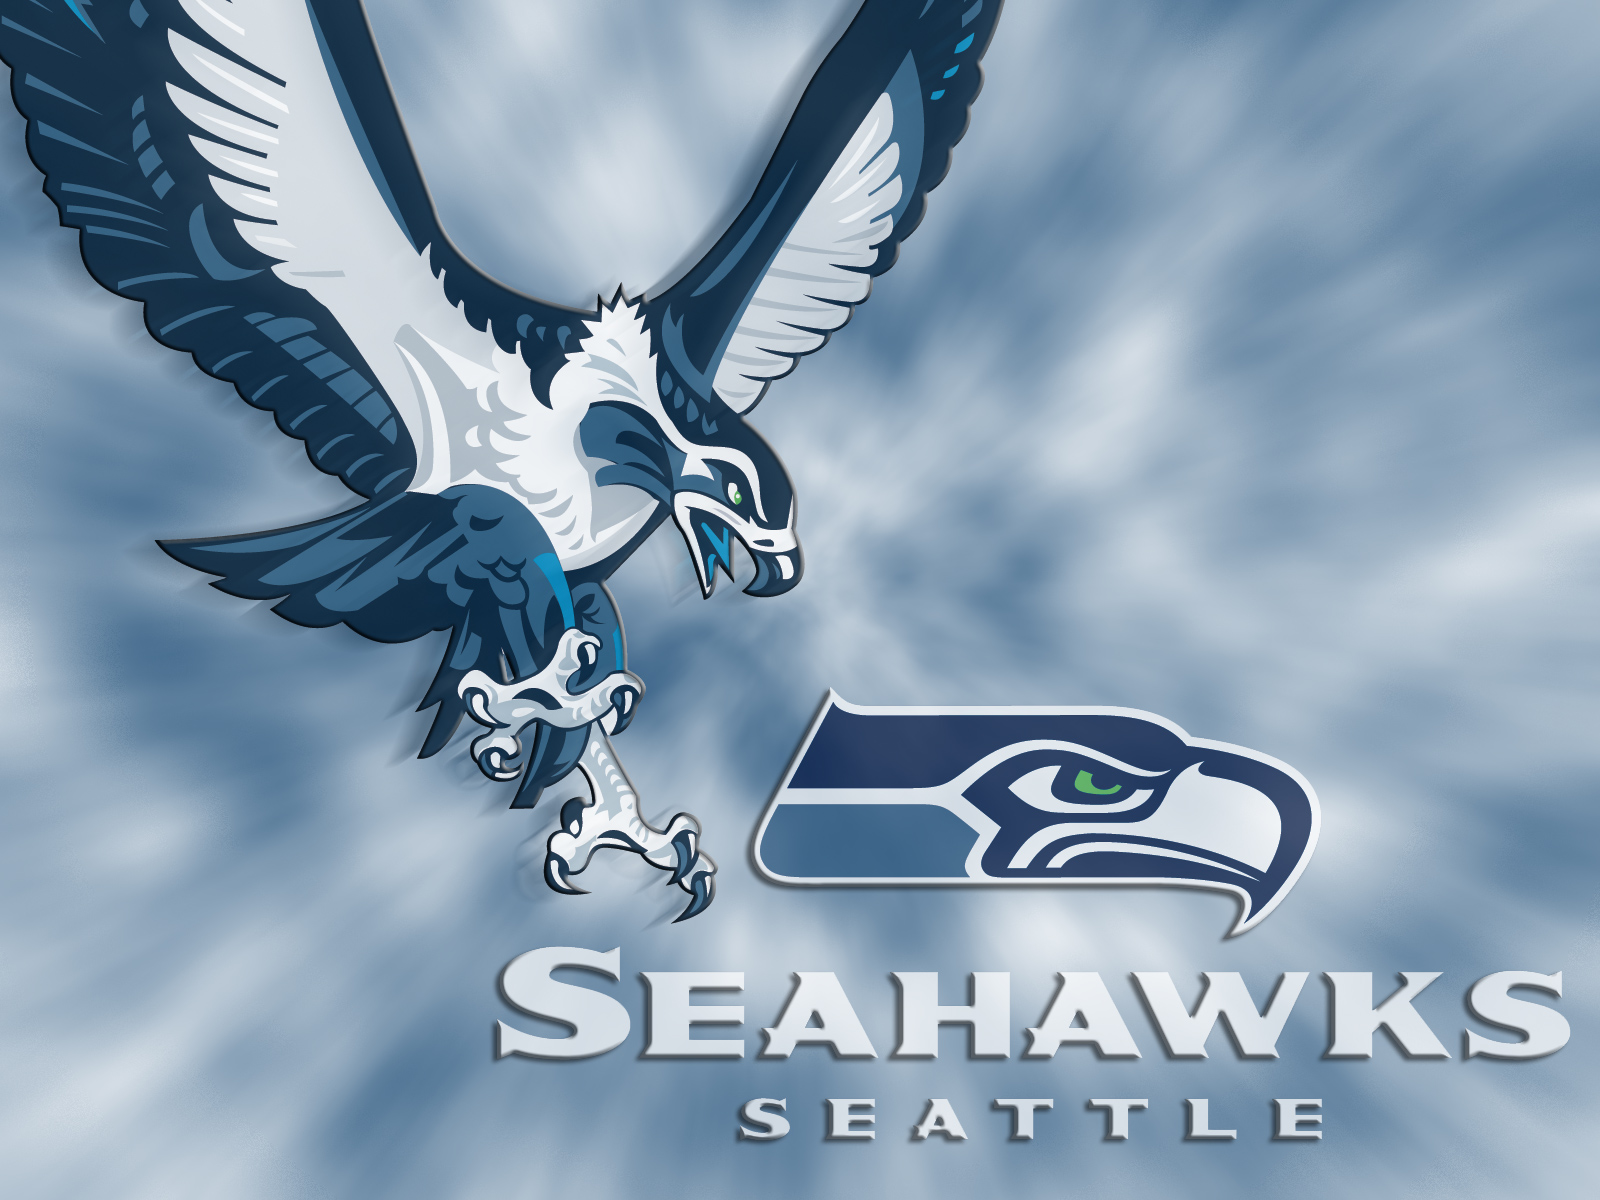 Seattle Seahawks Jerseys NFL Shop 50% Off - Seahaw